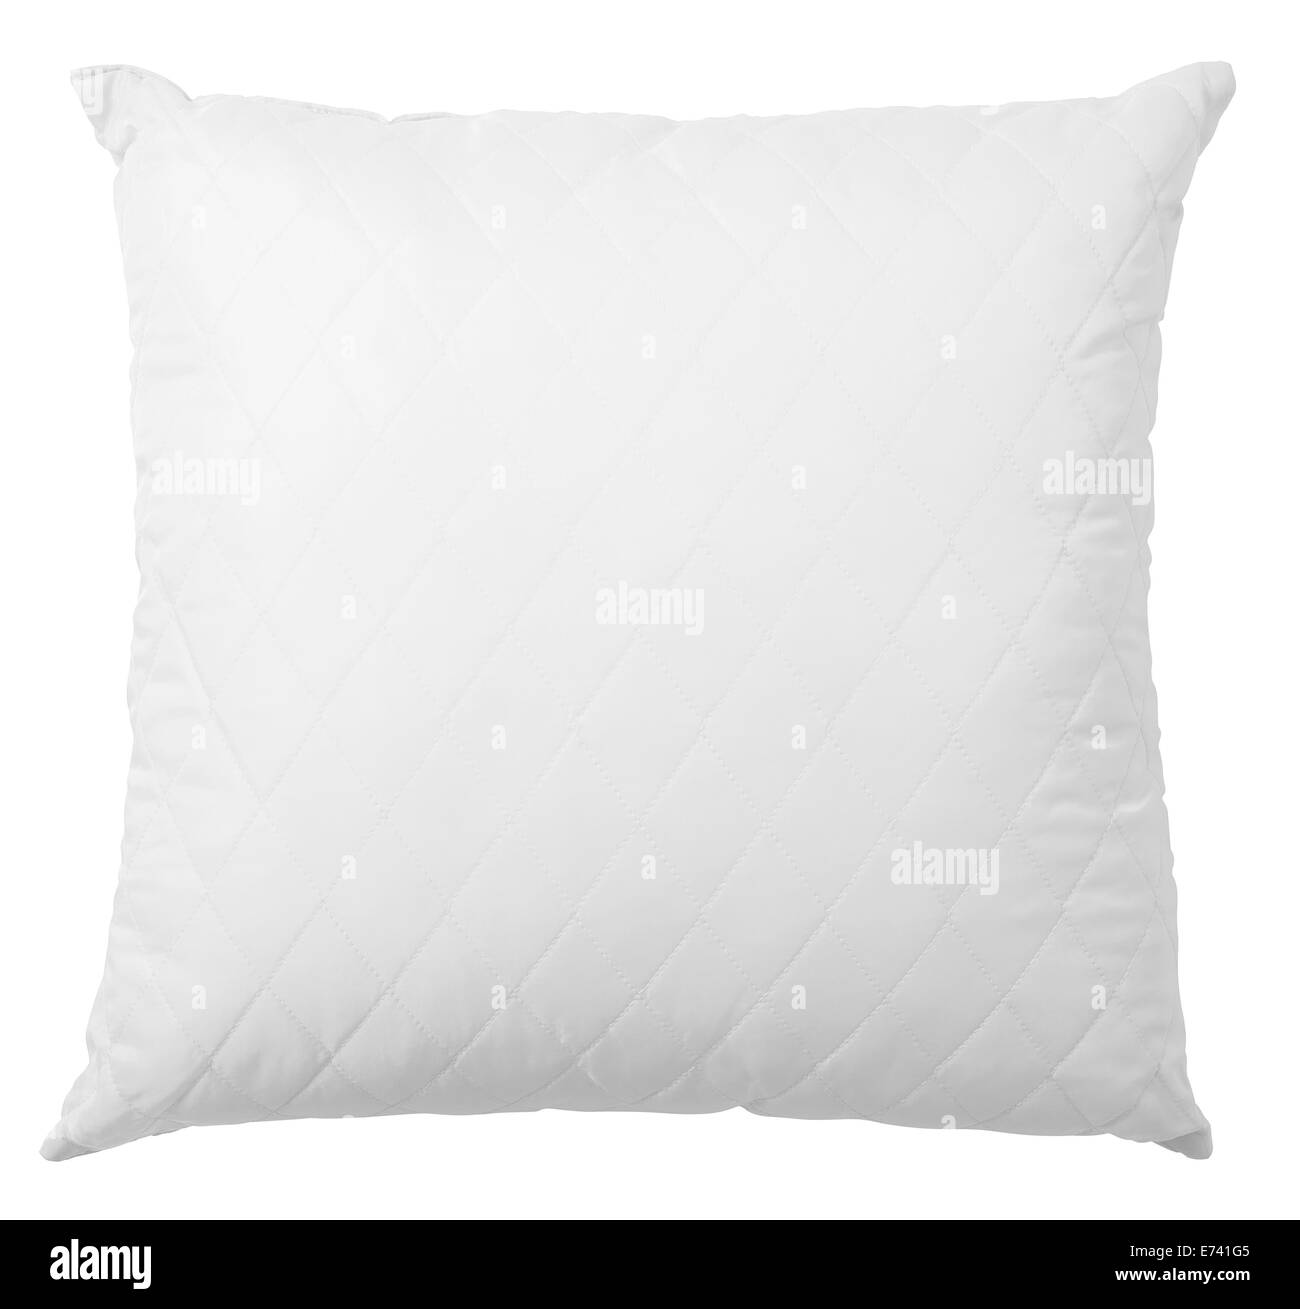 white pillow isolated with clipping path included - Stock Image